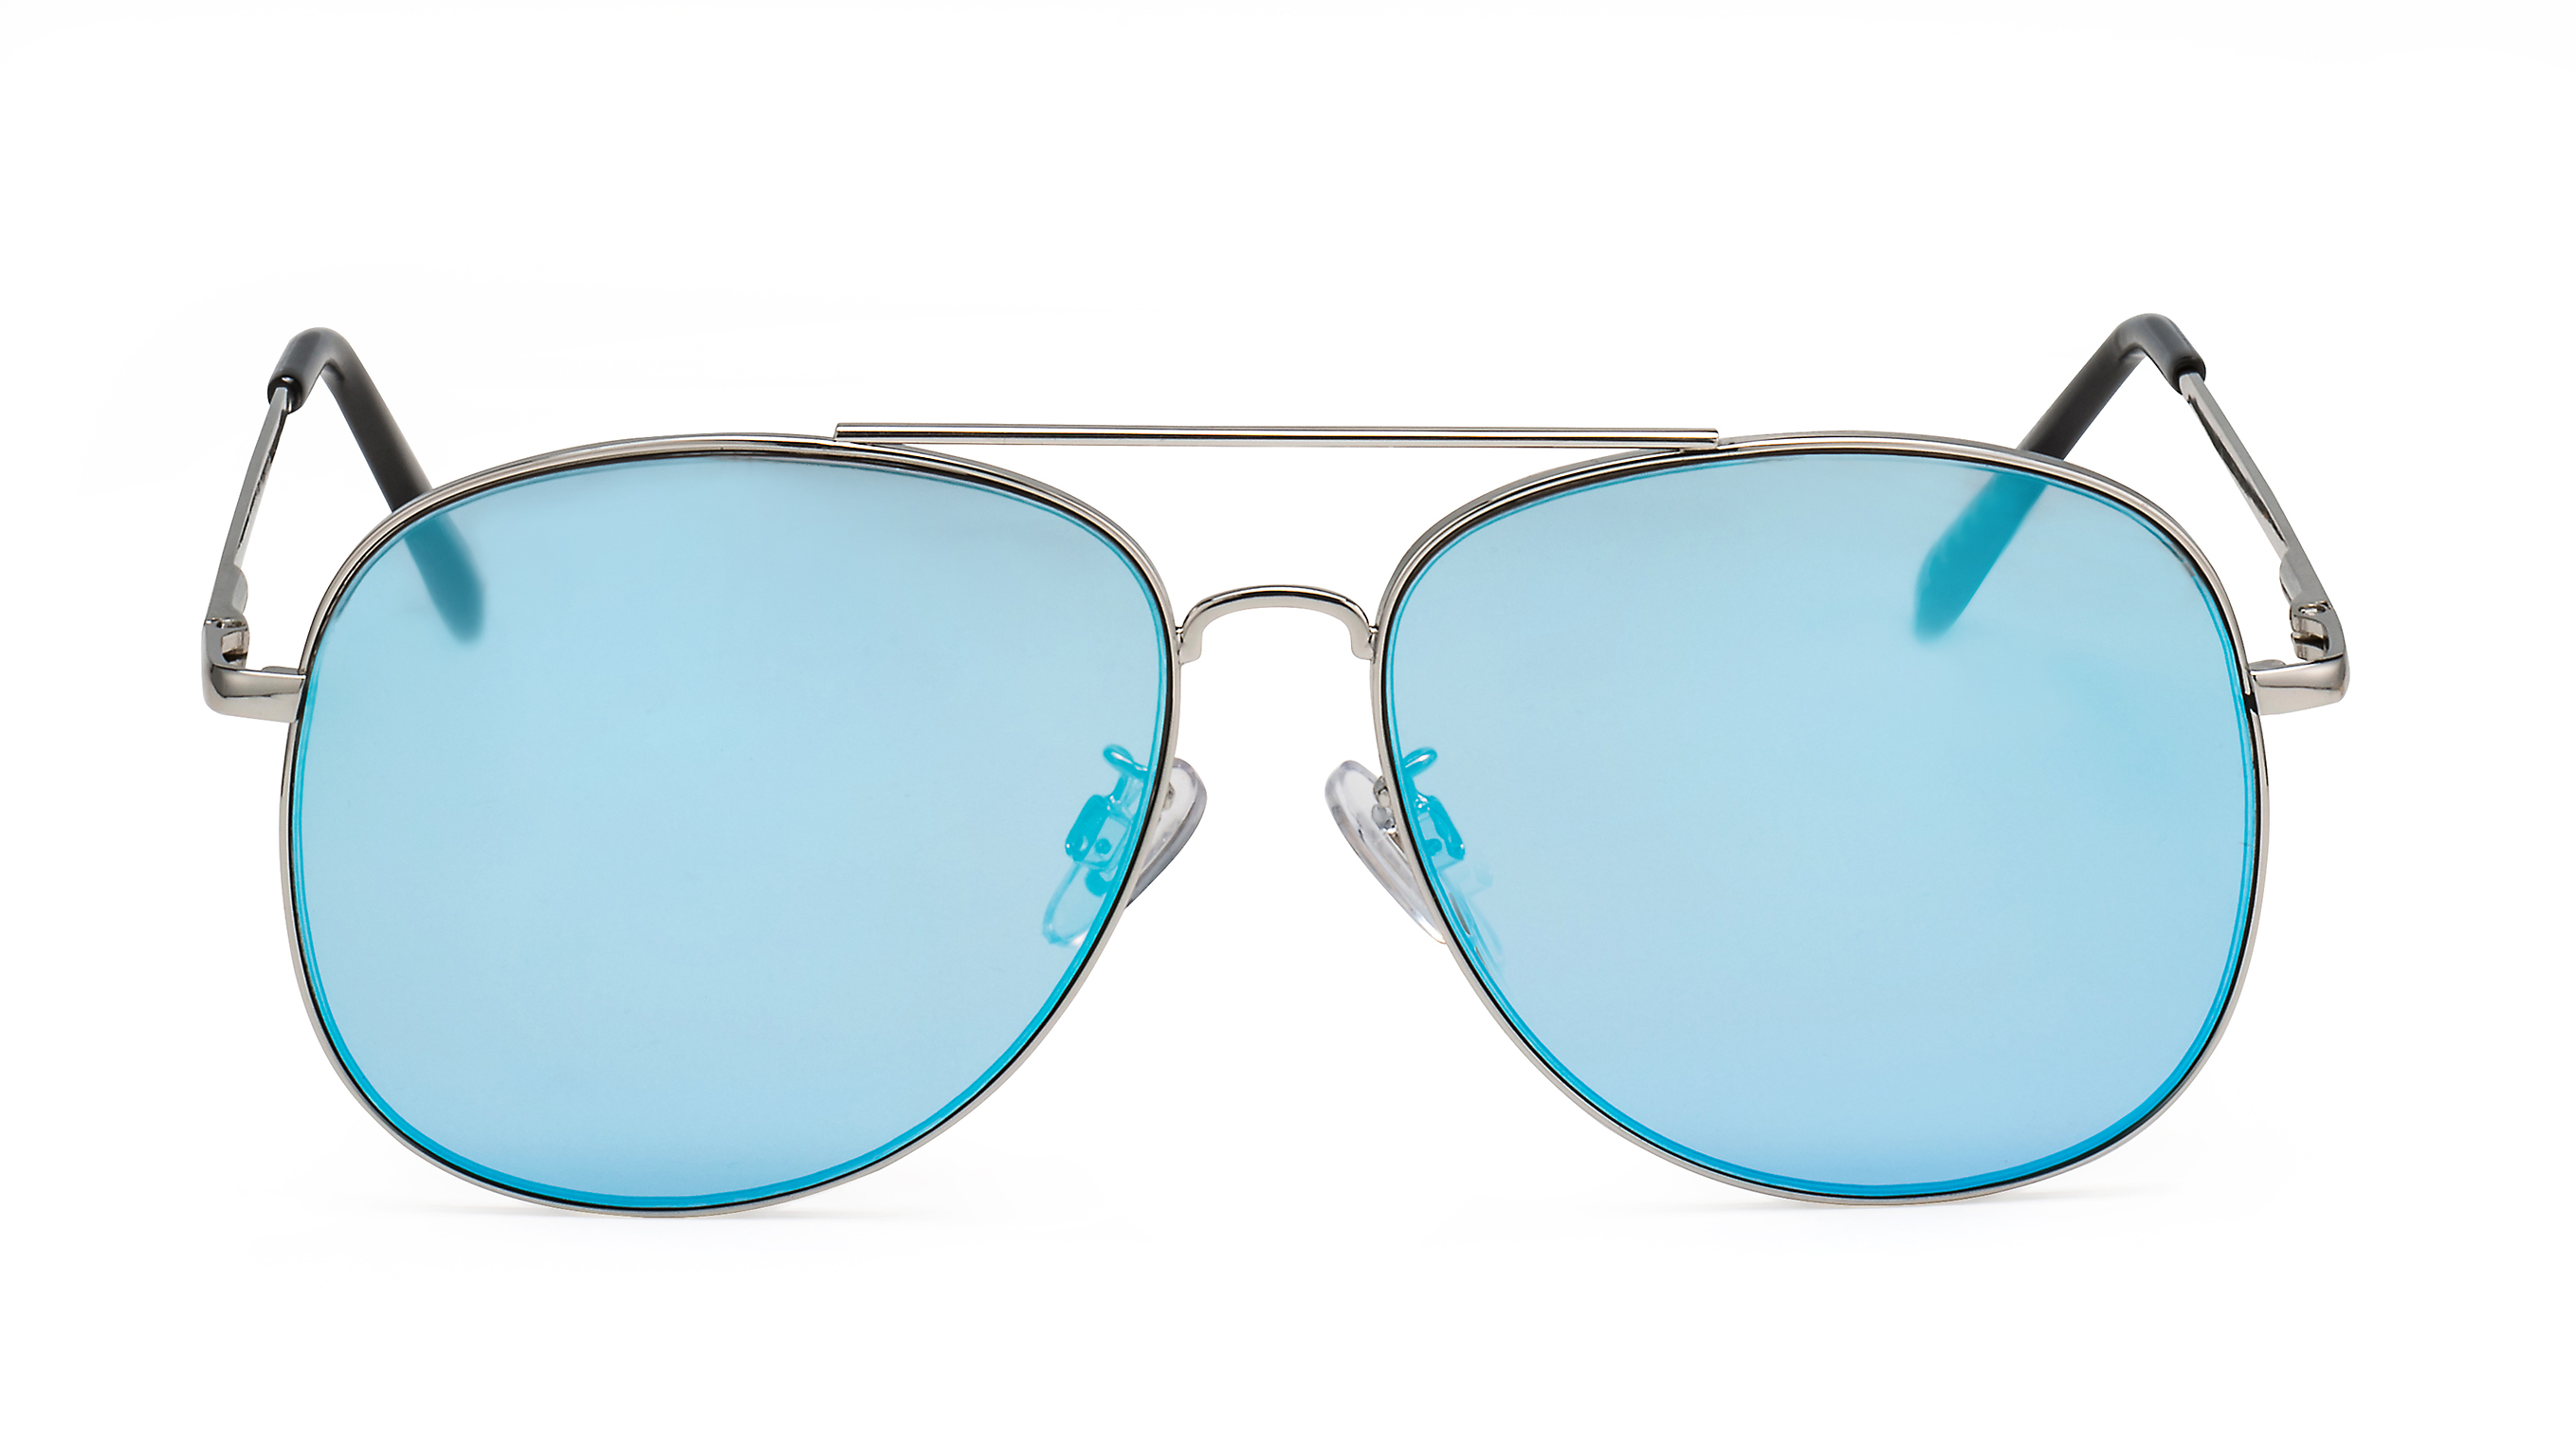 Front view sunglasses 3025408